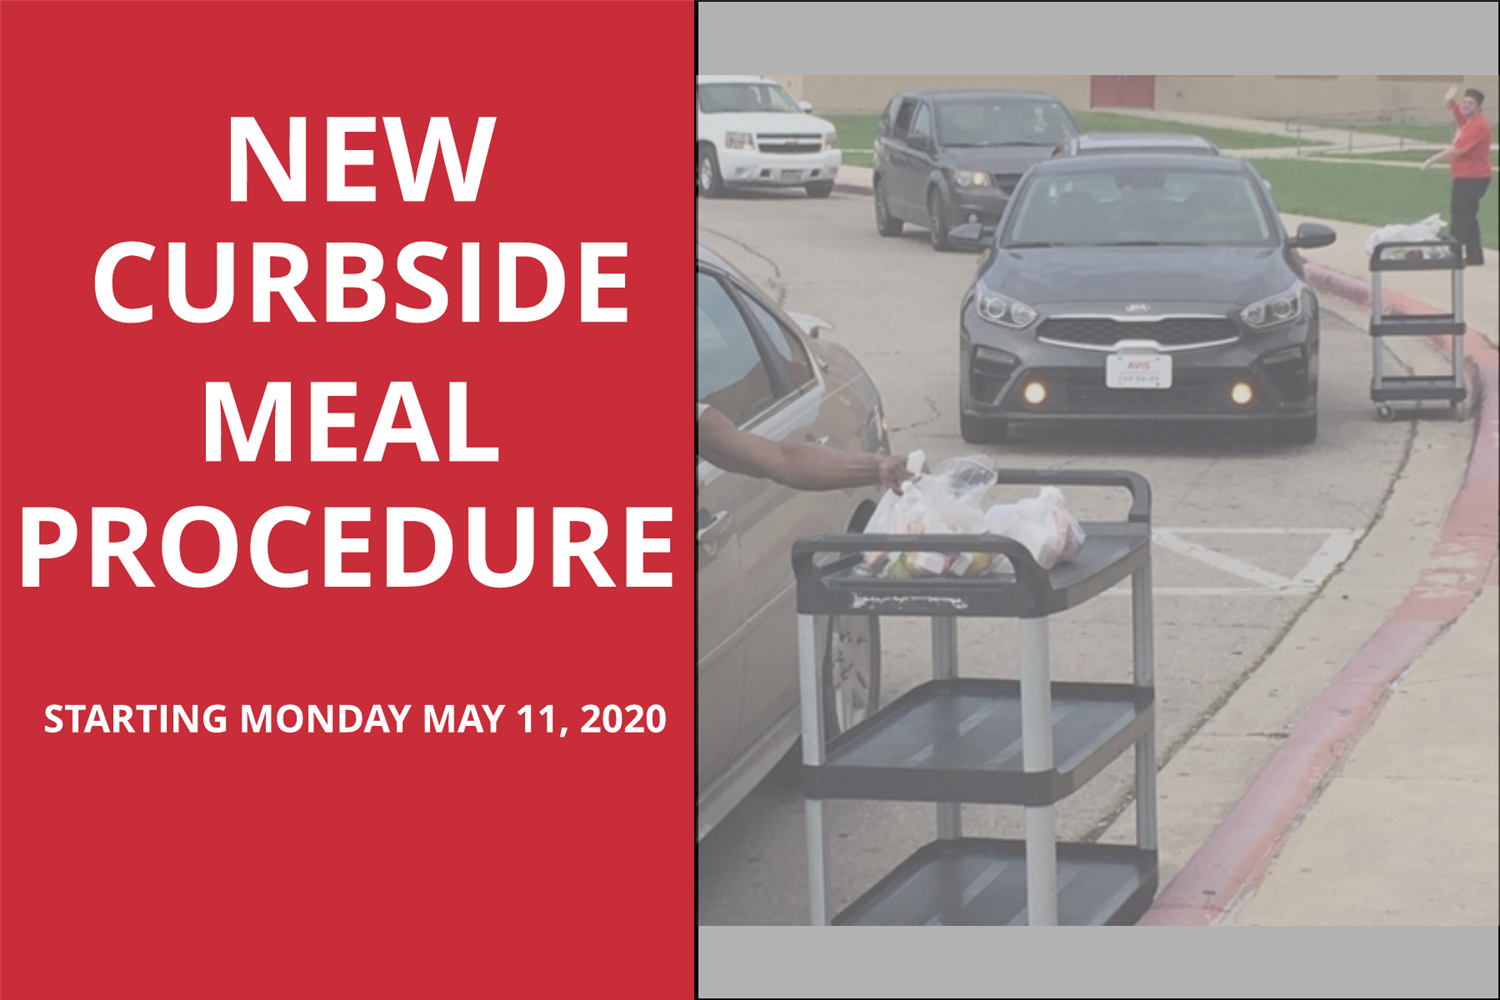 new curbside meal procedure